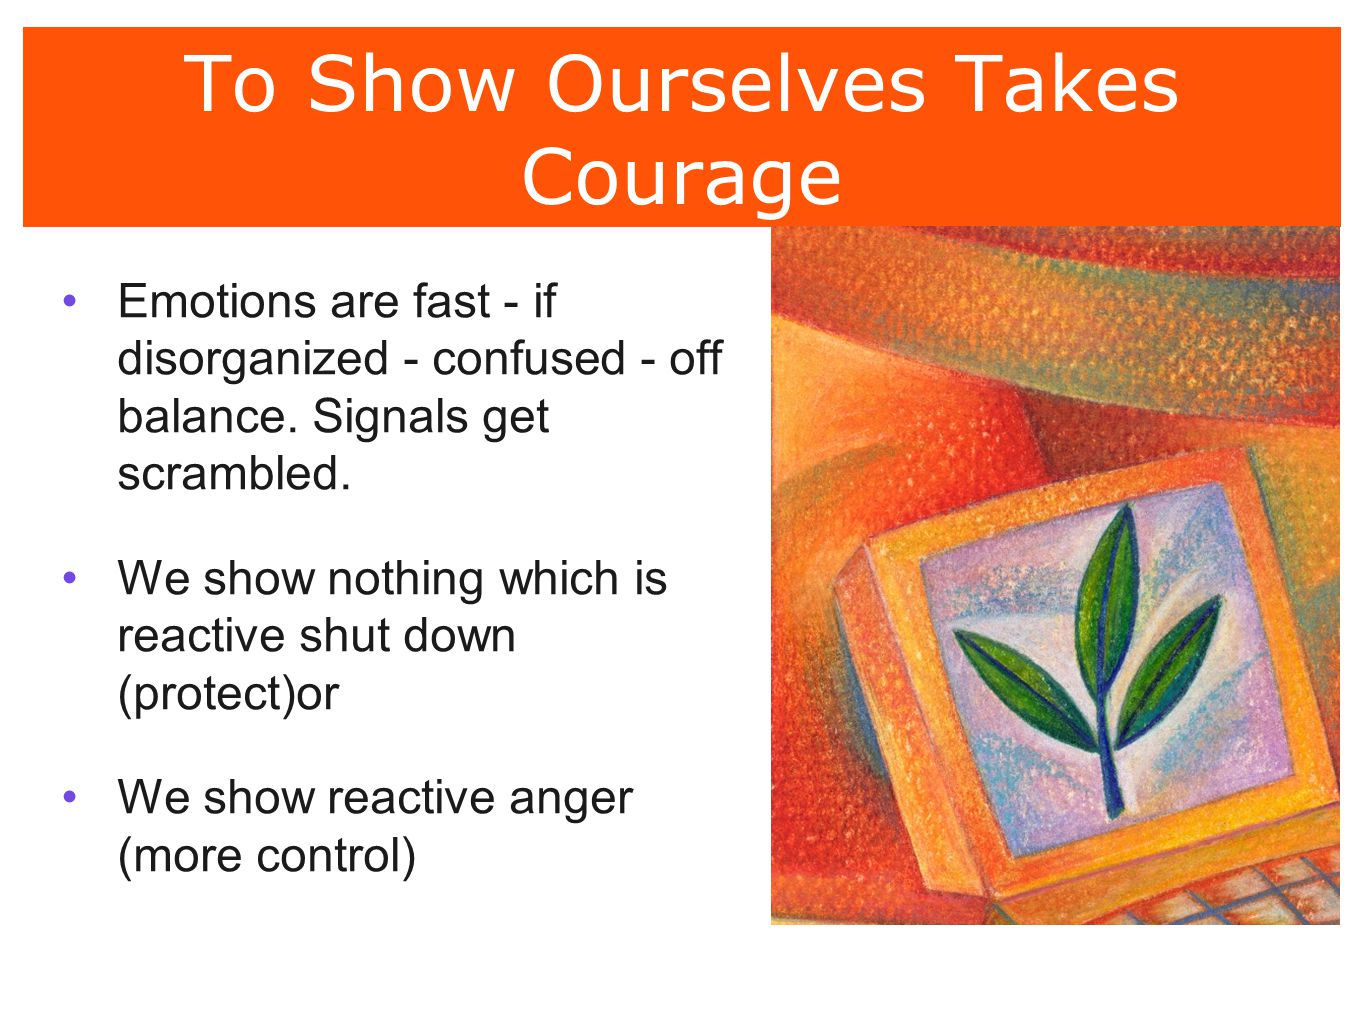 To Show Ourselves Takes Courage